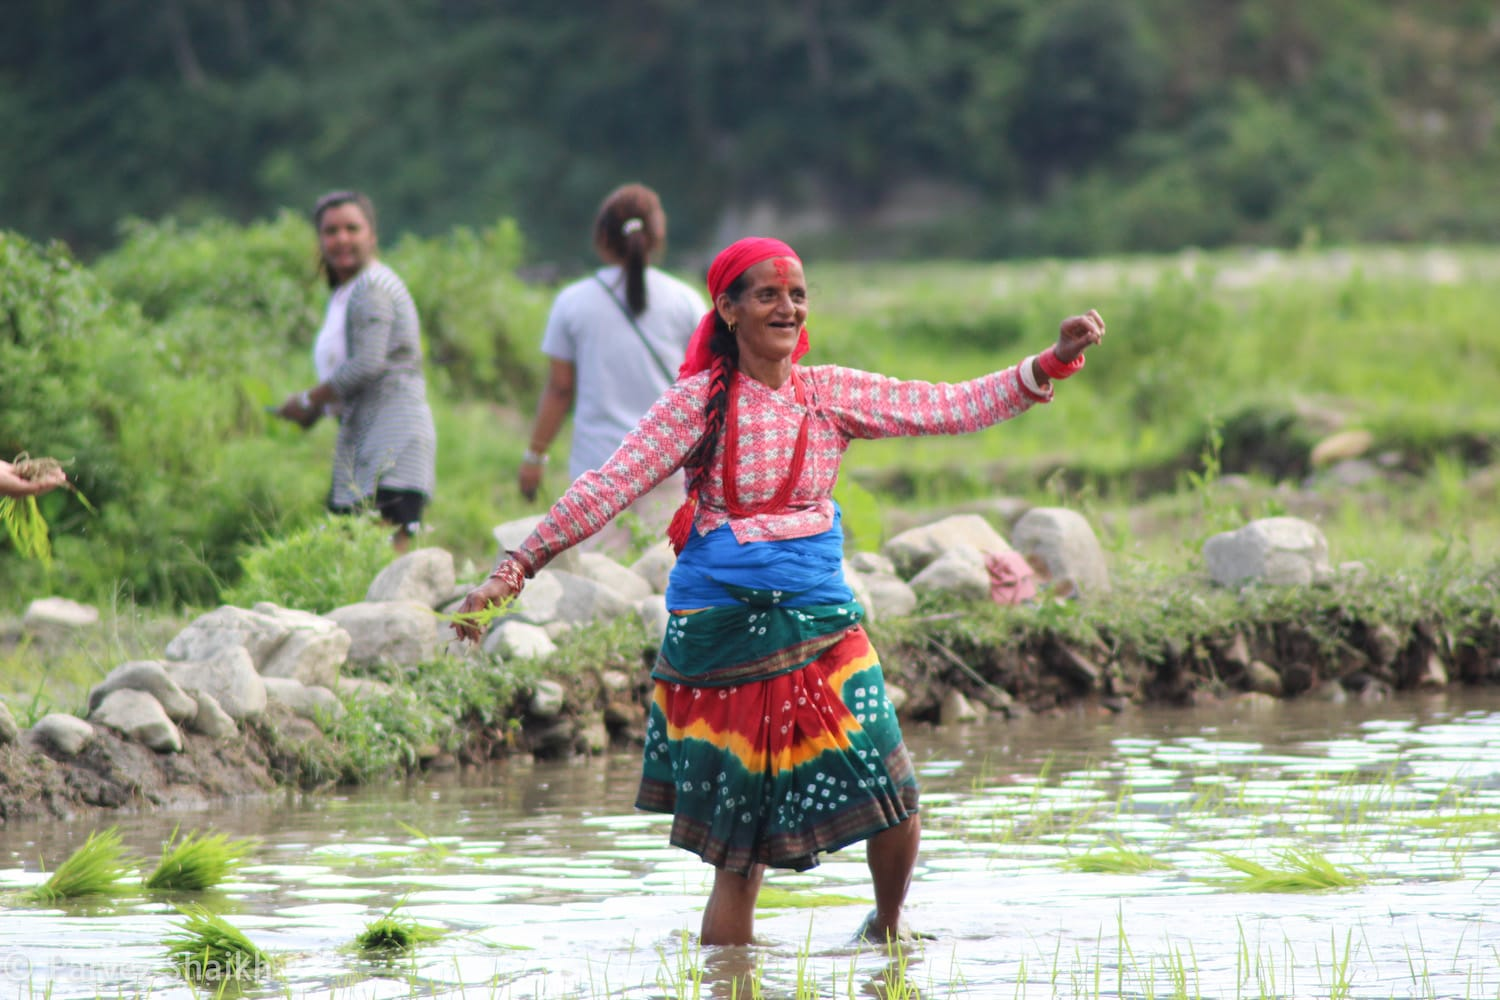 A Nepali Woman Dancing to Folk Music at Ropain Festival